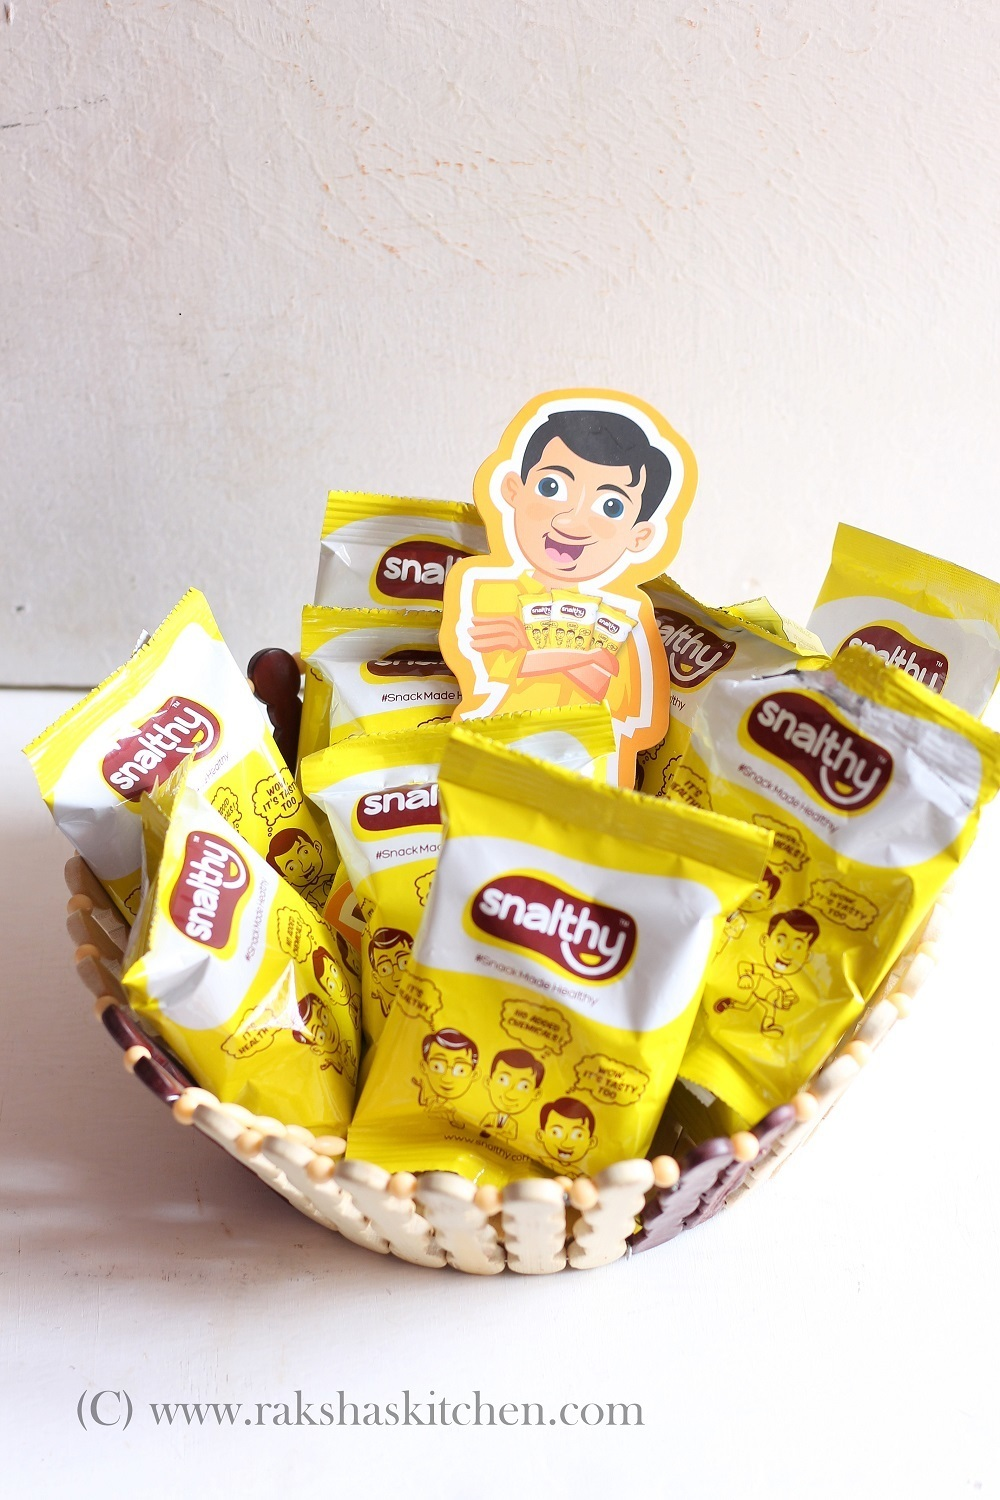 Snalthy Snacks - A Product Review